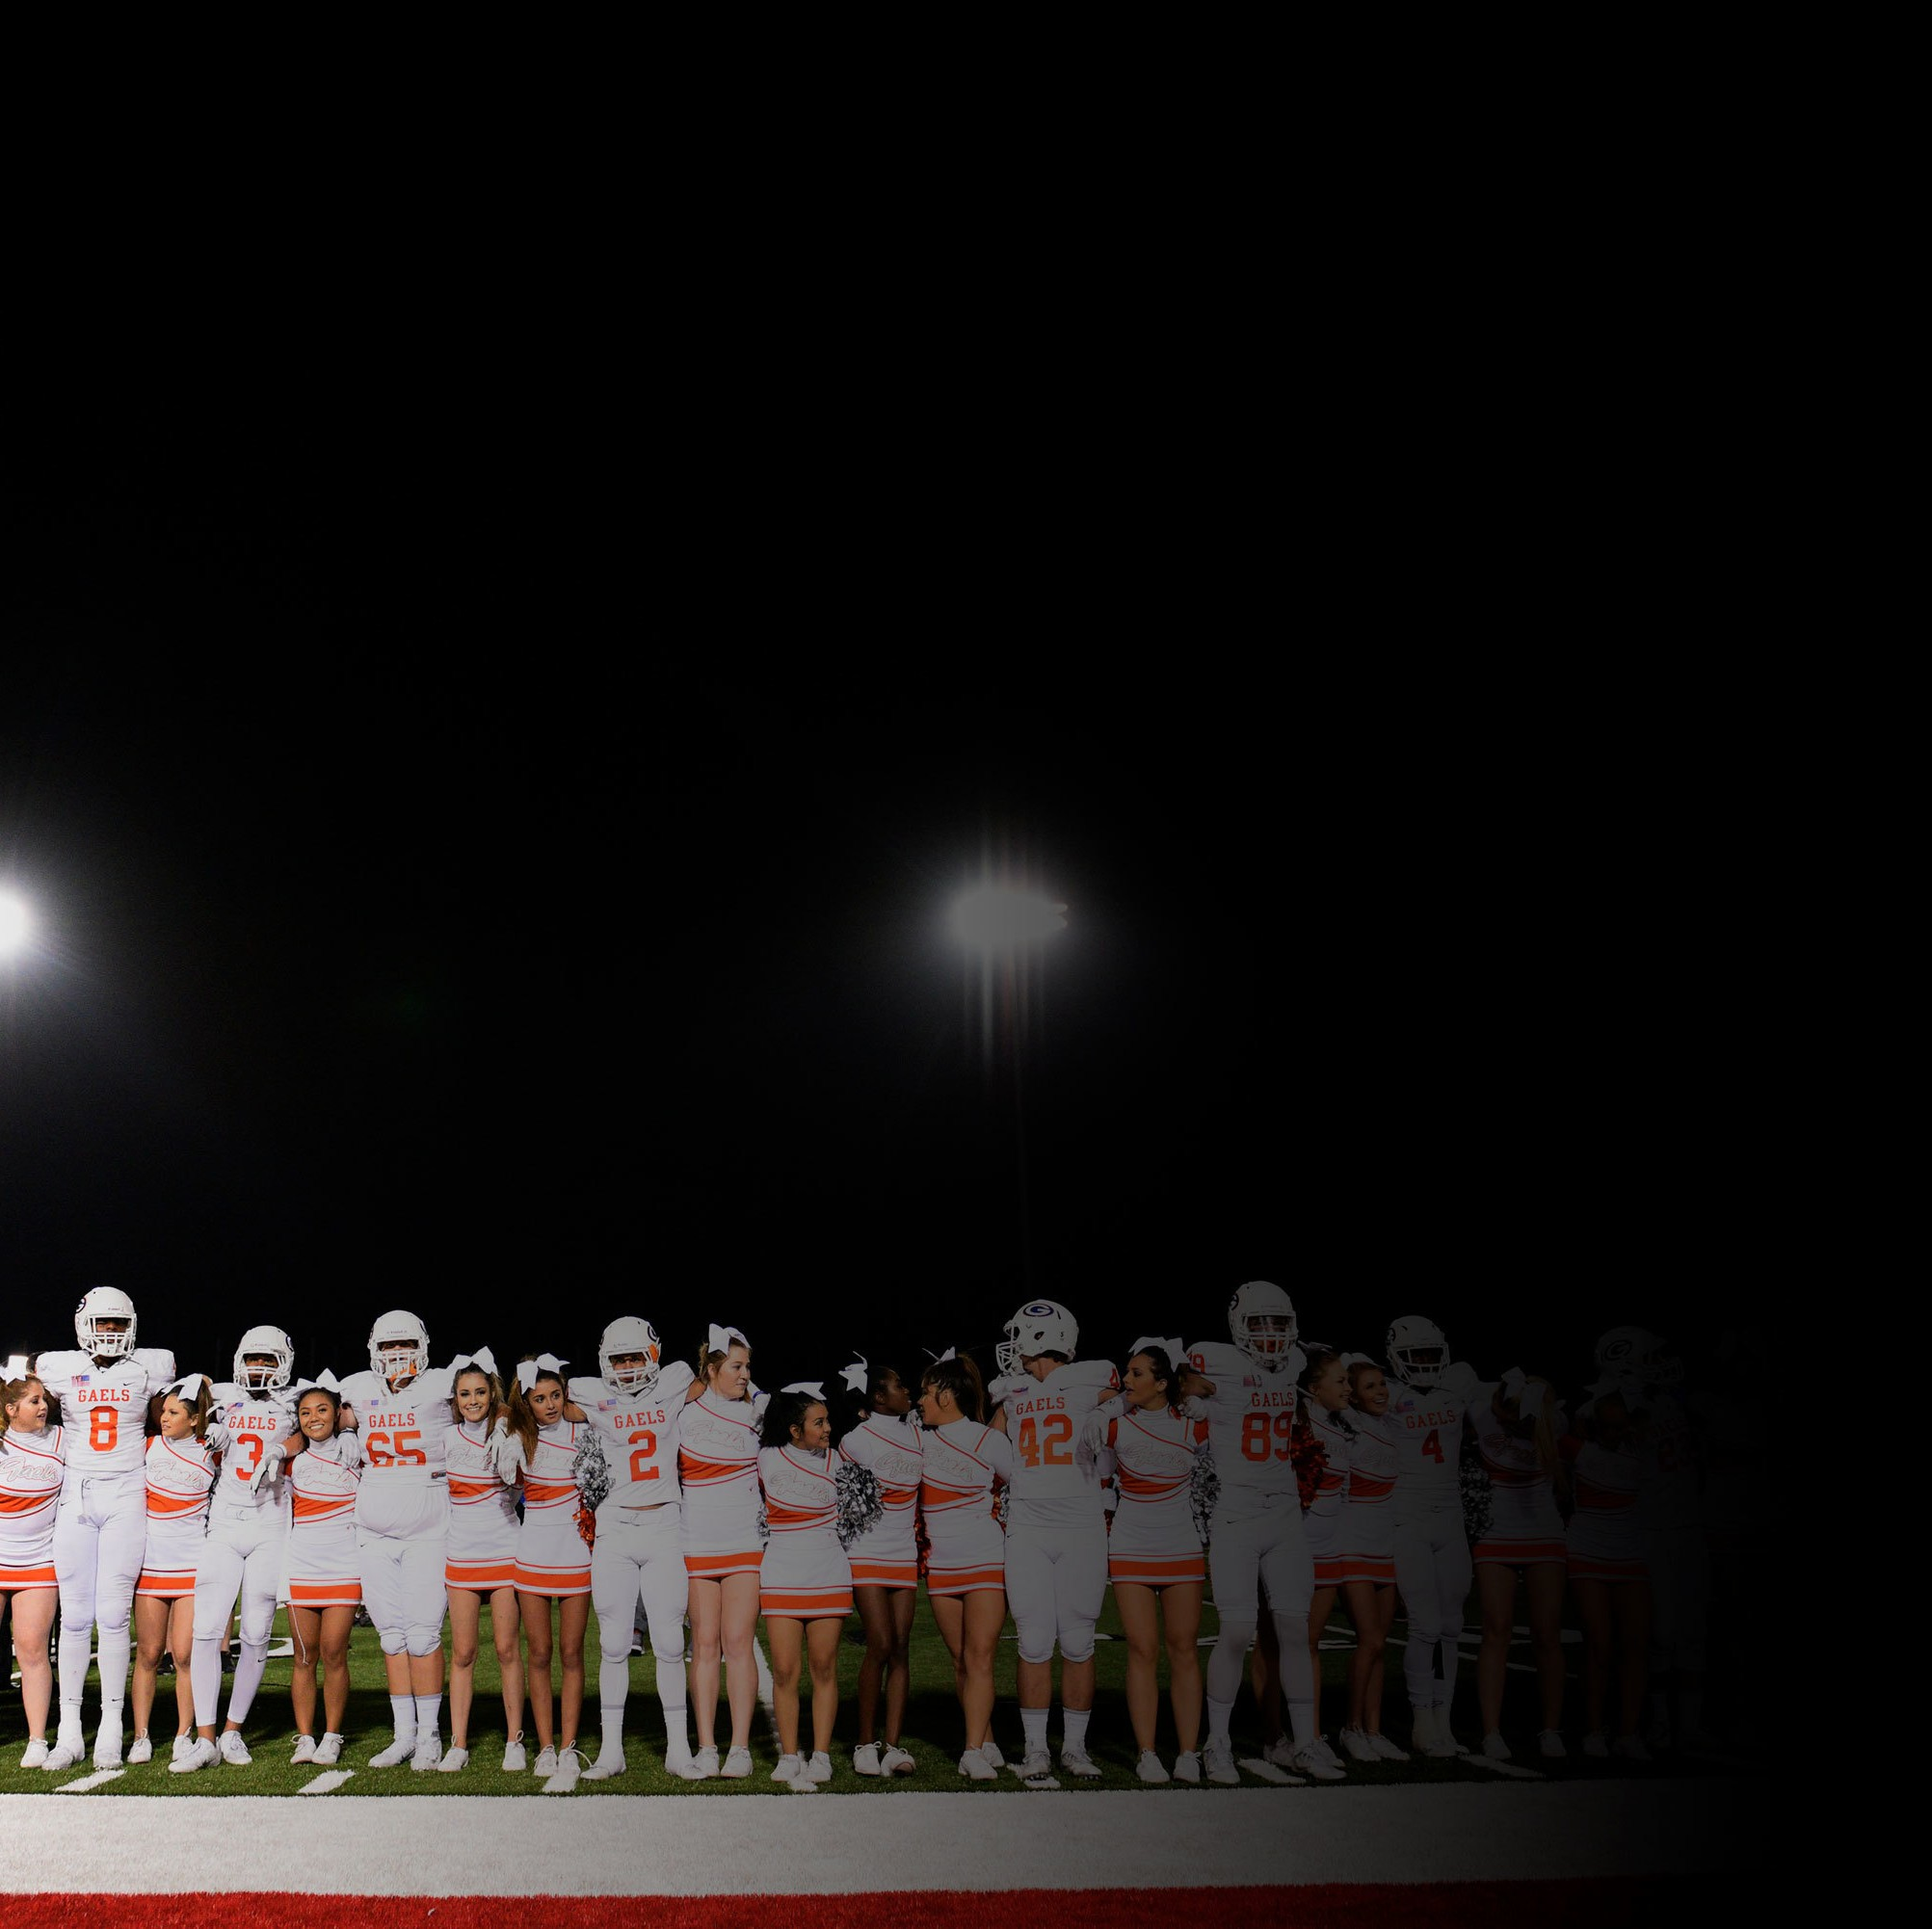 Friday-night-lights-out-the-case-for-abolishing-high-school-football-1480389531.jpg?crop=0.6686159844054581xw:1xh;0